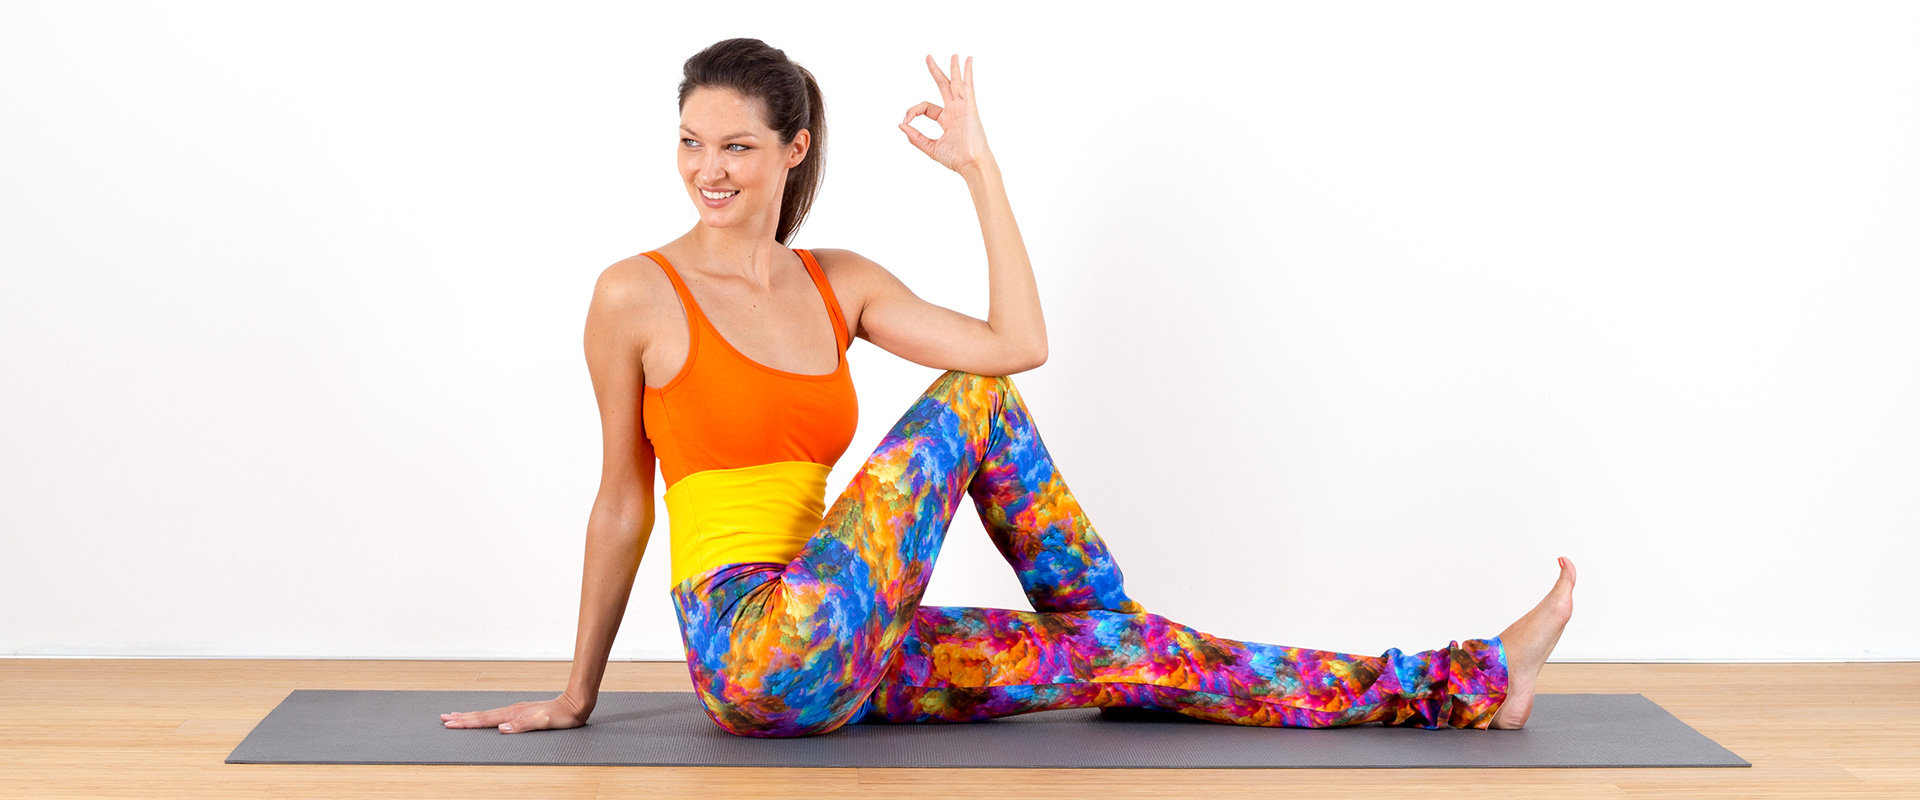 Legging Yoga bunt hippie